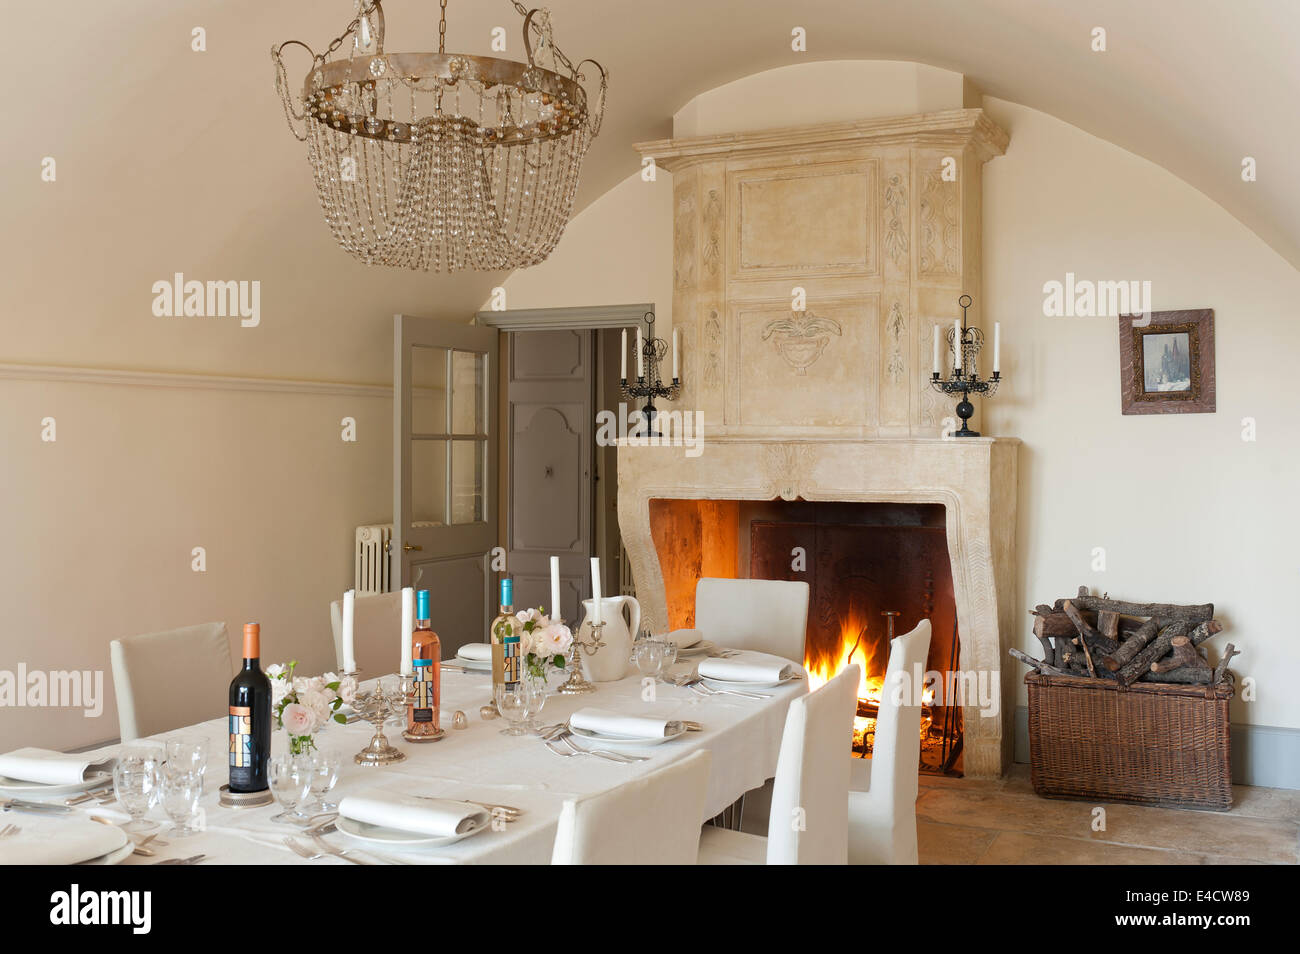 Large Open Stone Fireplace In Vaulted Dining Room With 19th Century Crystal Light And Candelabra French Linen Table Cloth C